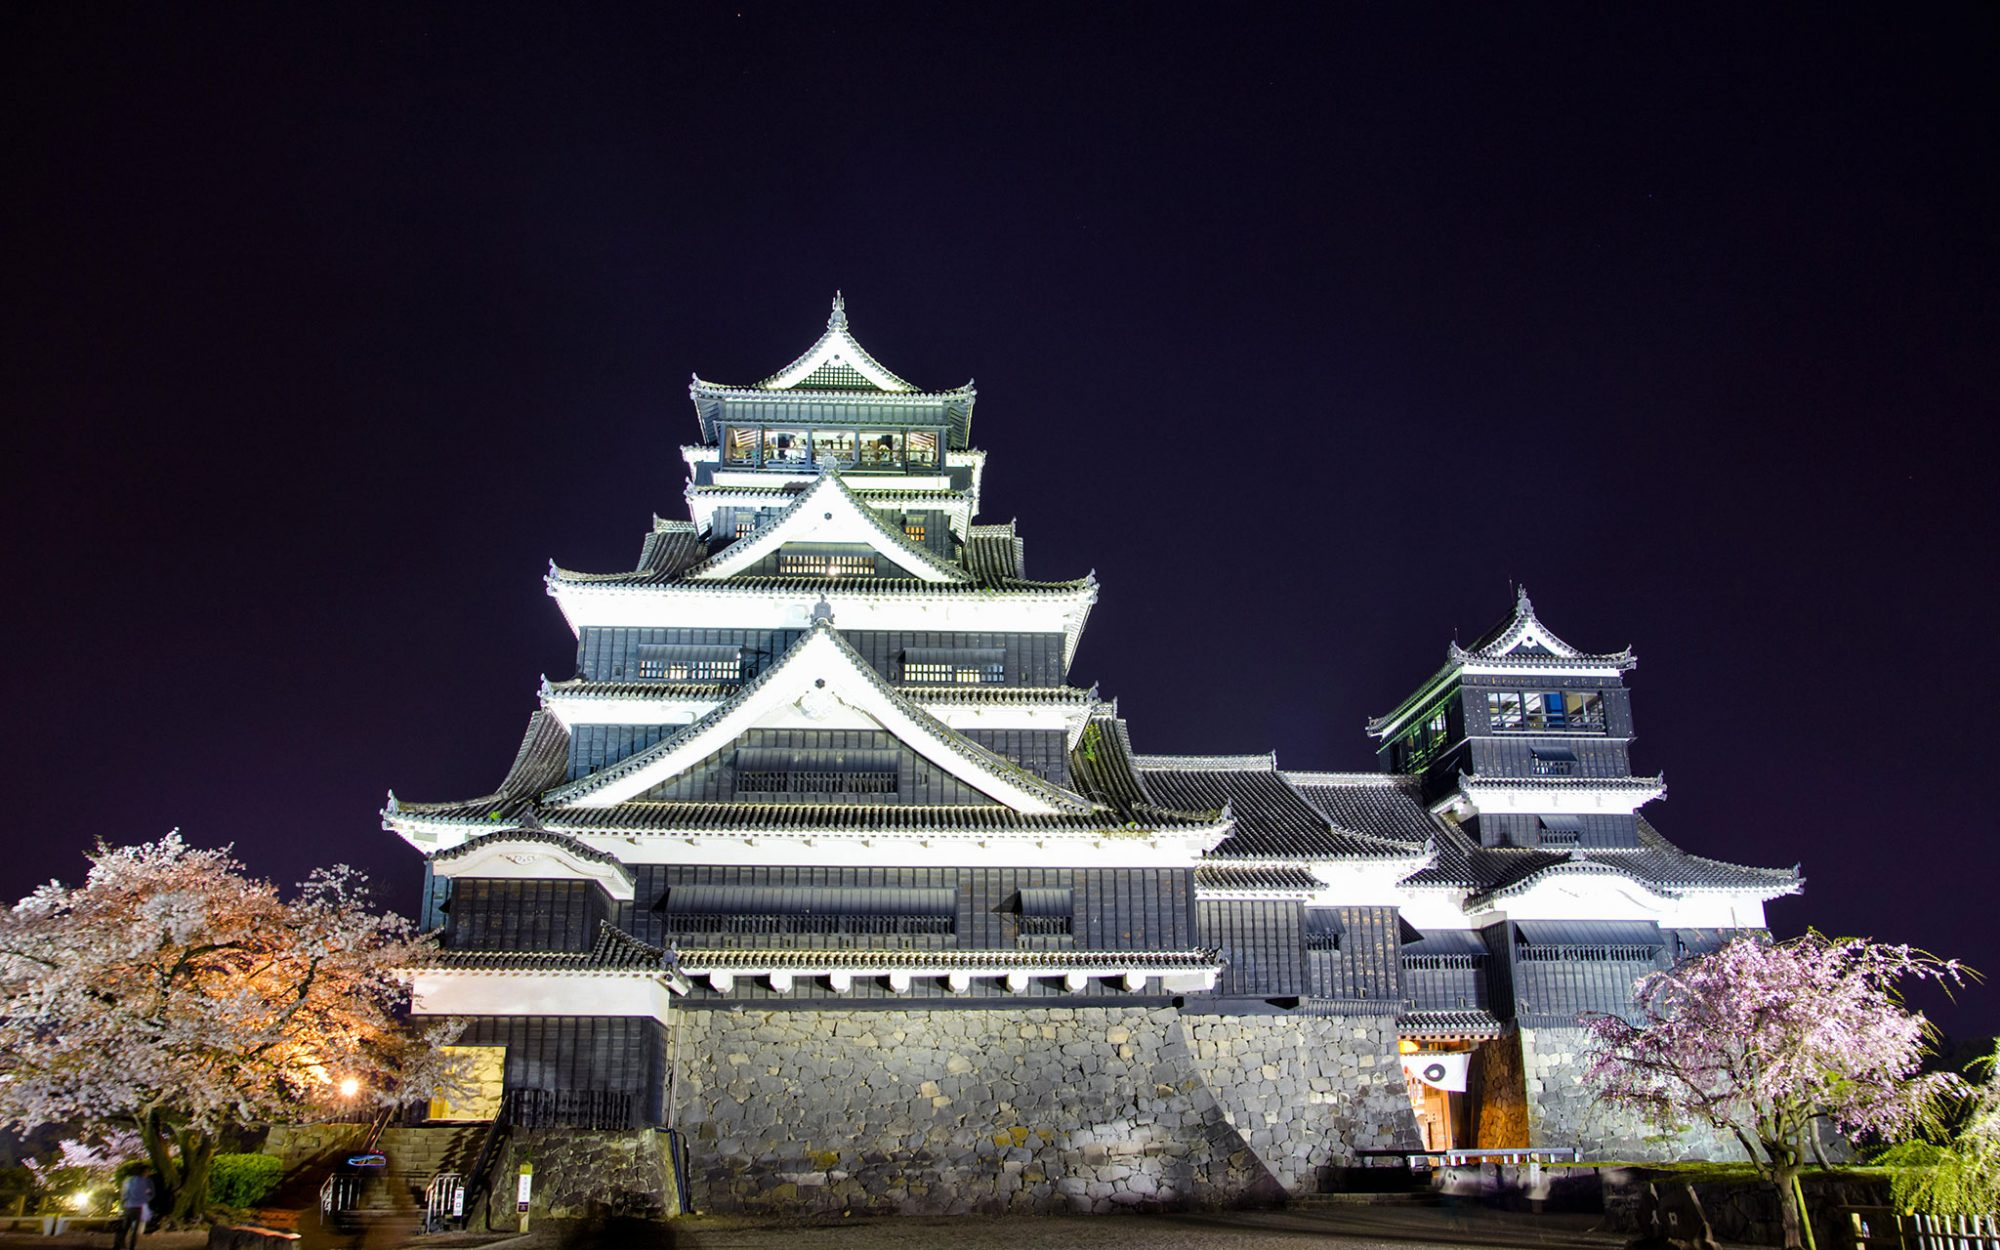 World's Most-Visited Castles: No. 12 Kumamoto Castle, Kumamoto, Japan